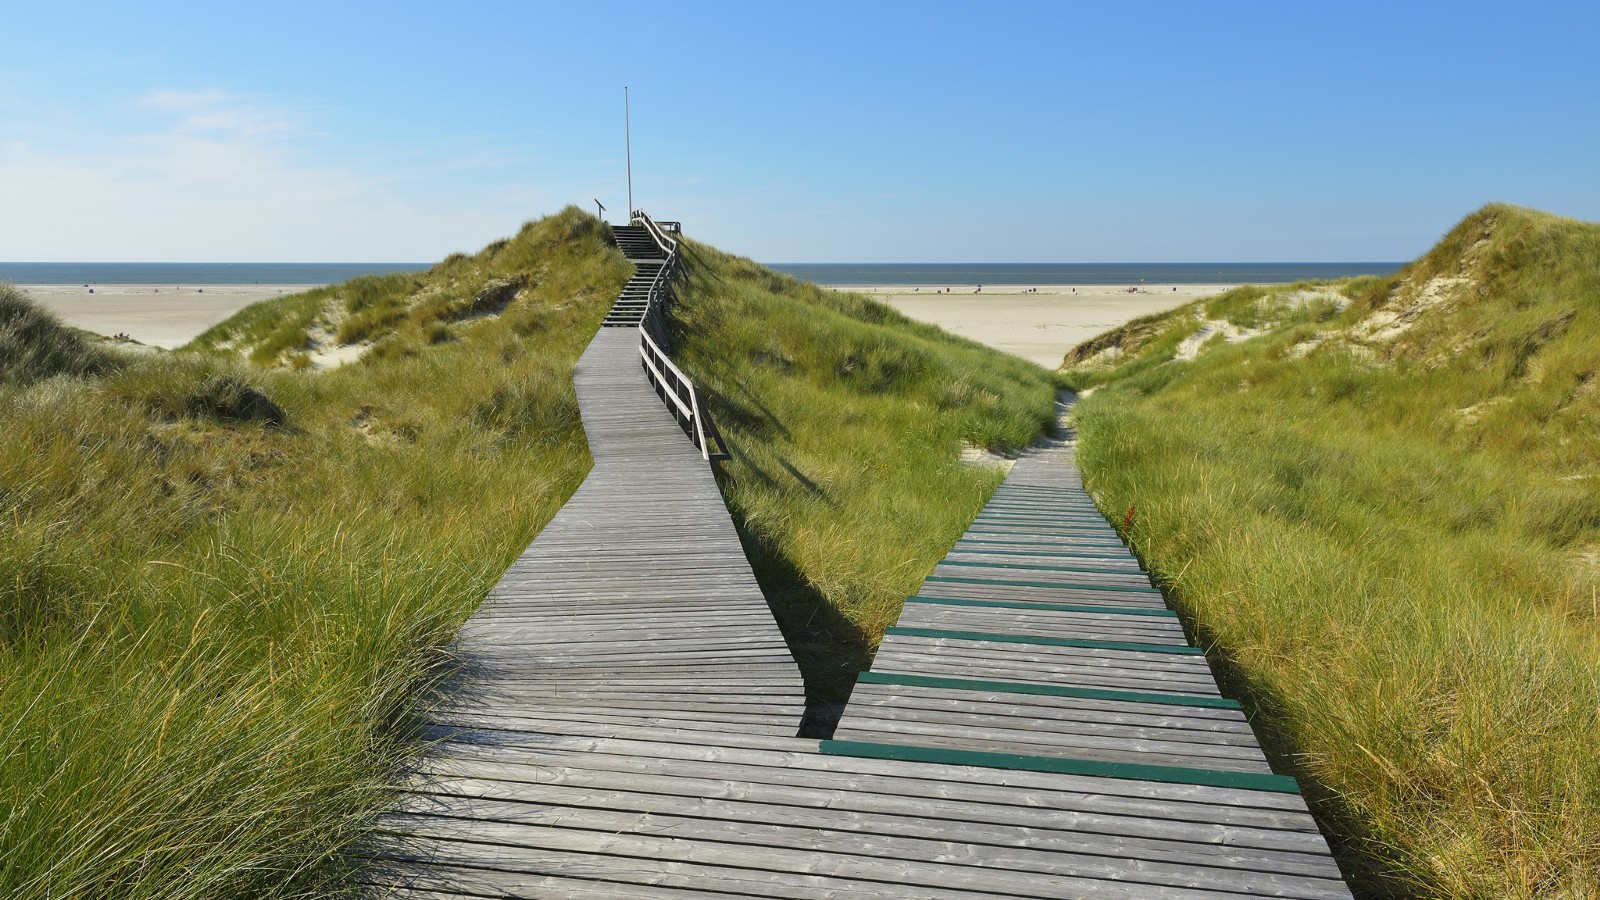 Forked wooden walkway, Schleswig-Holstein, Germany